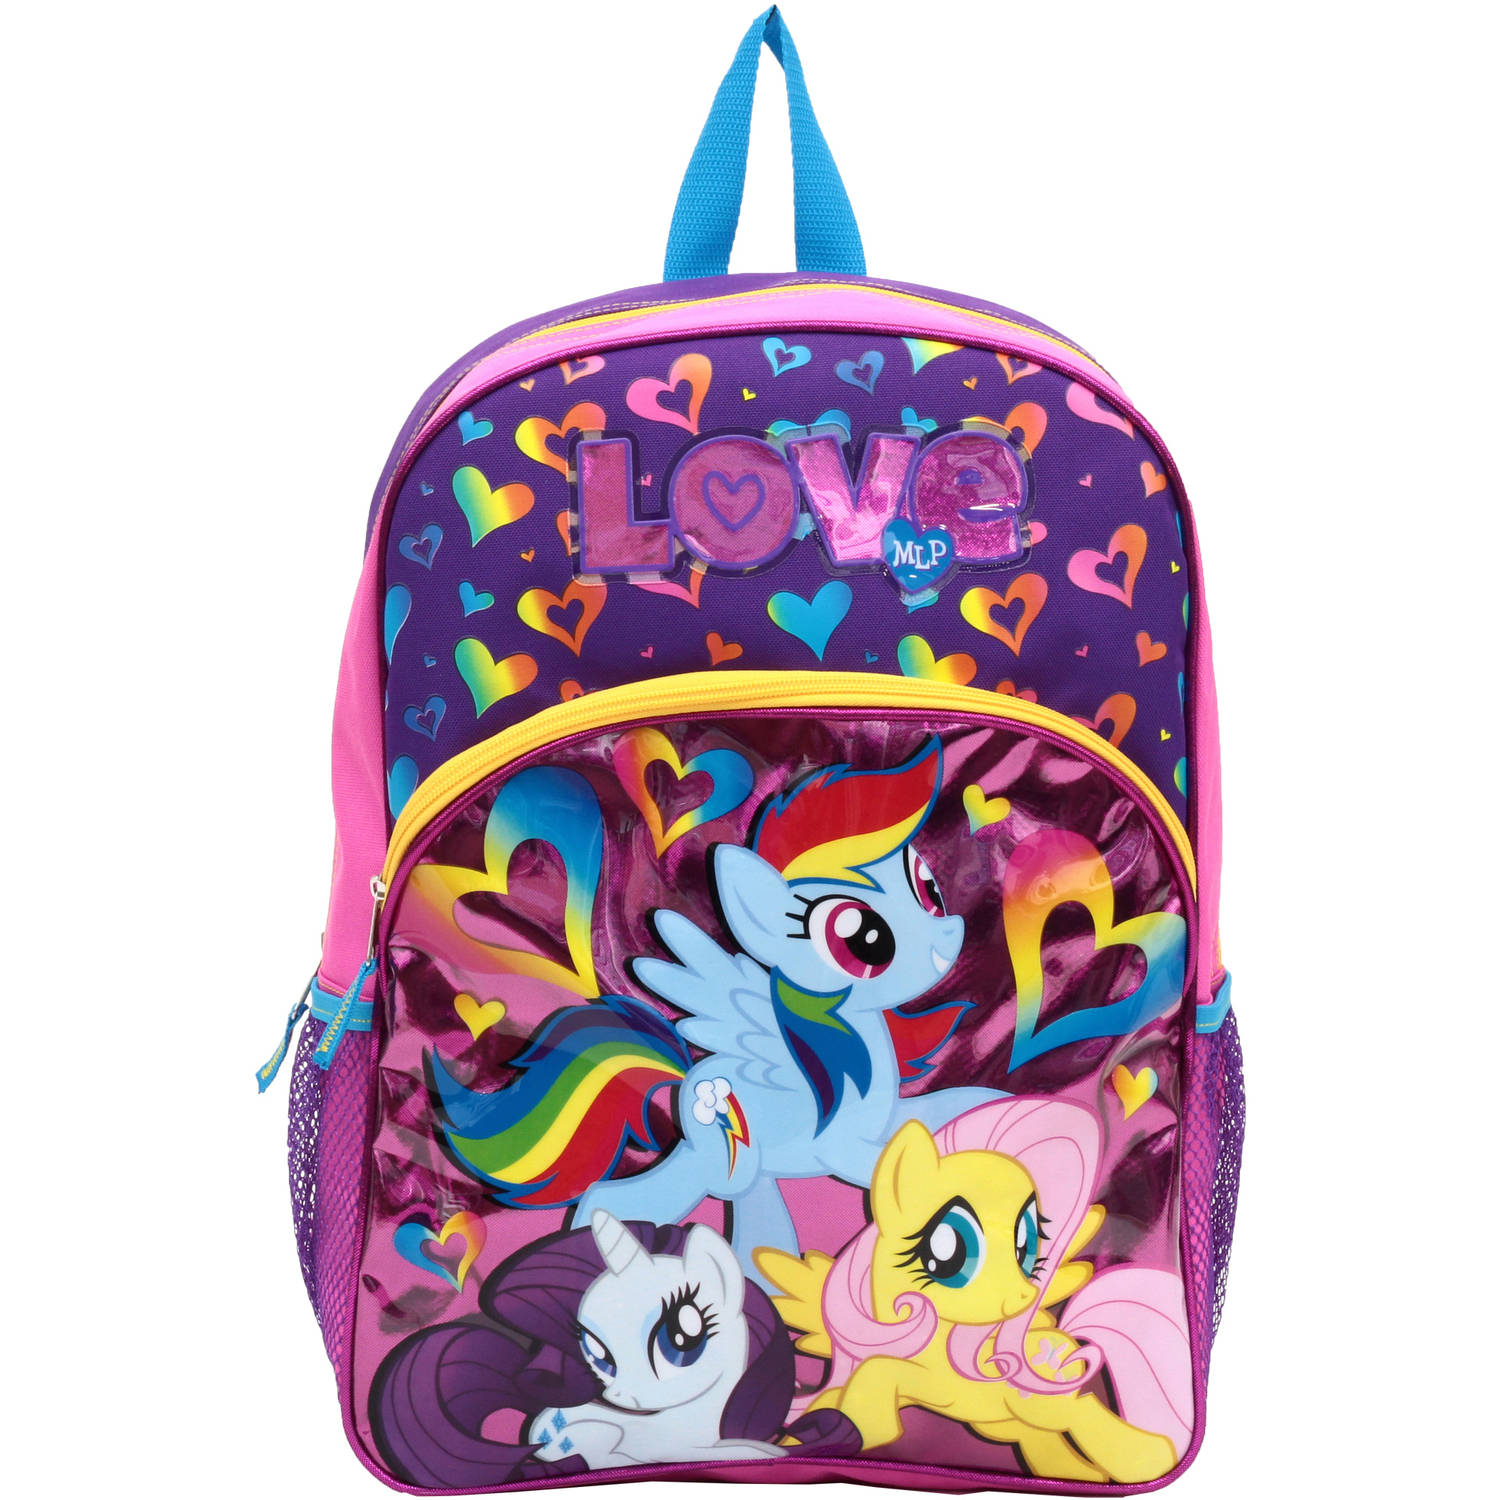 Book Bags For 4th Graders